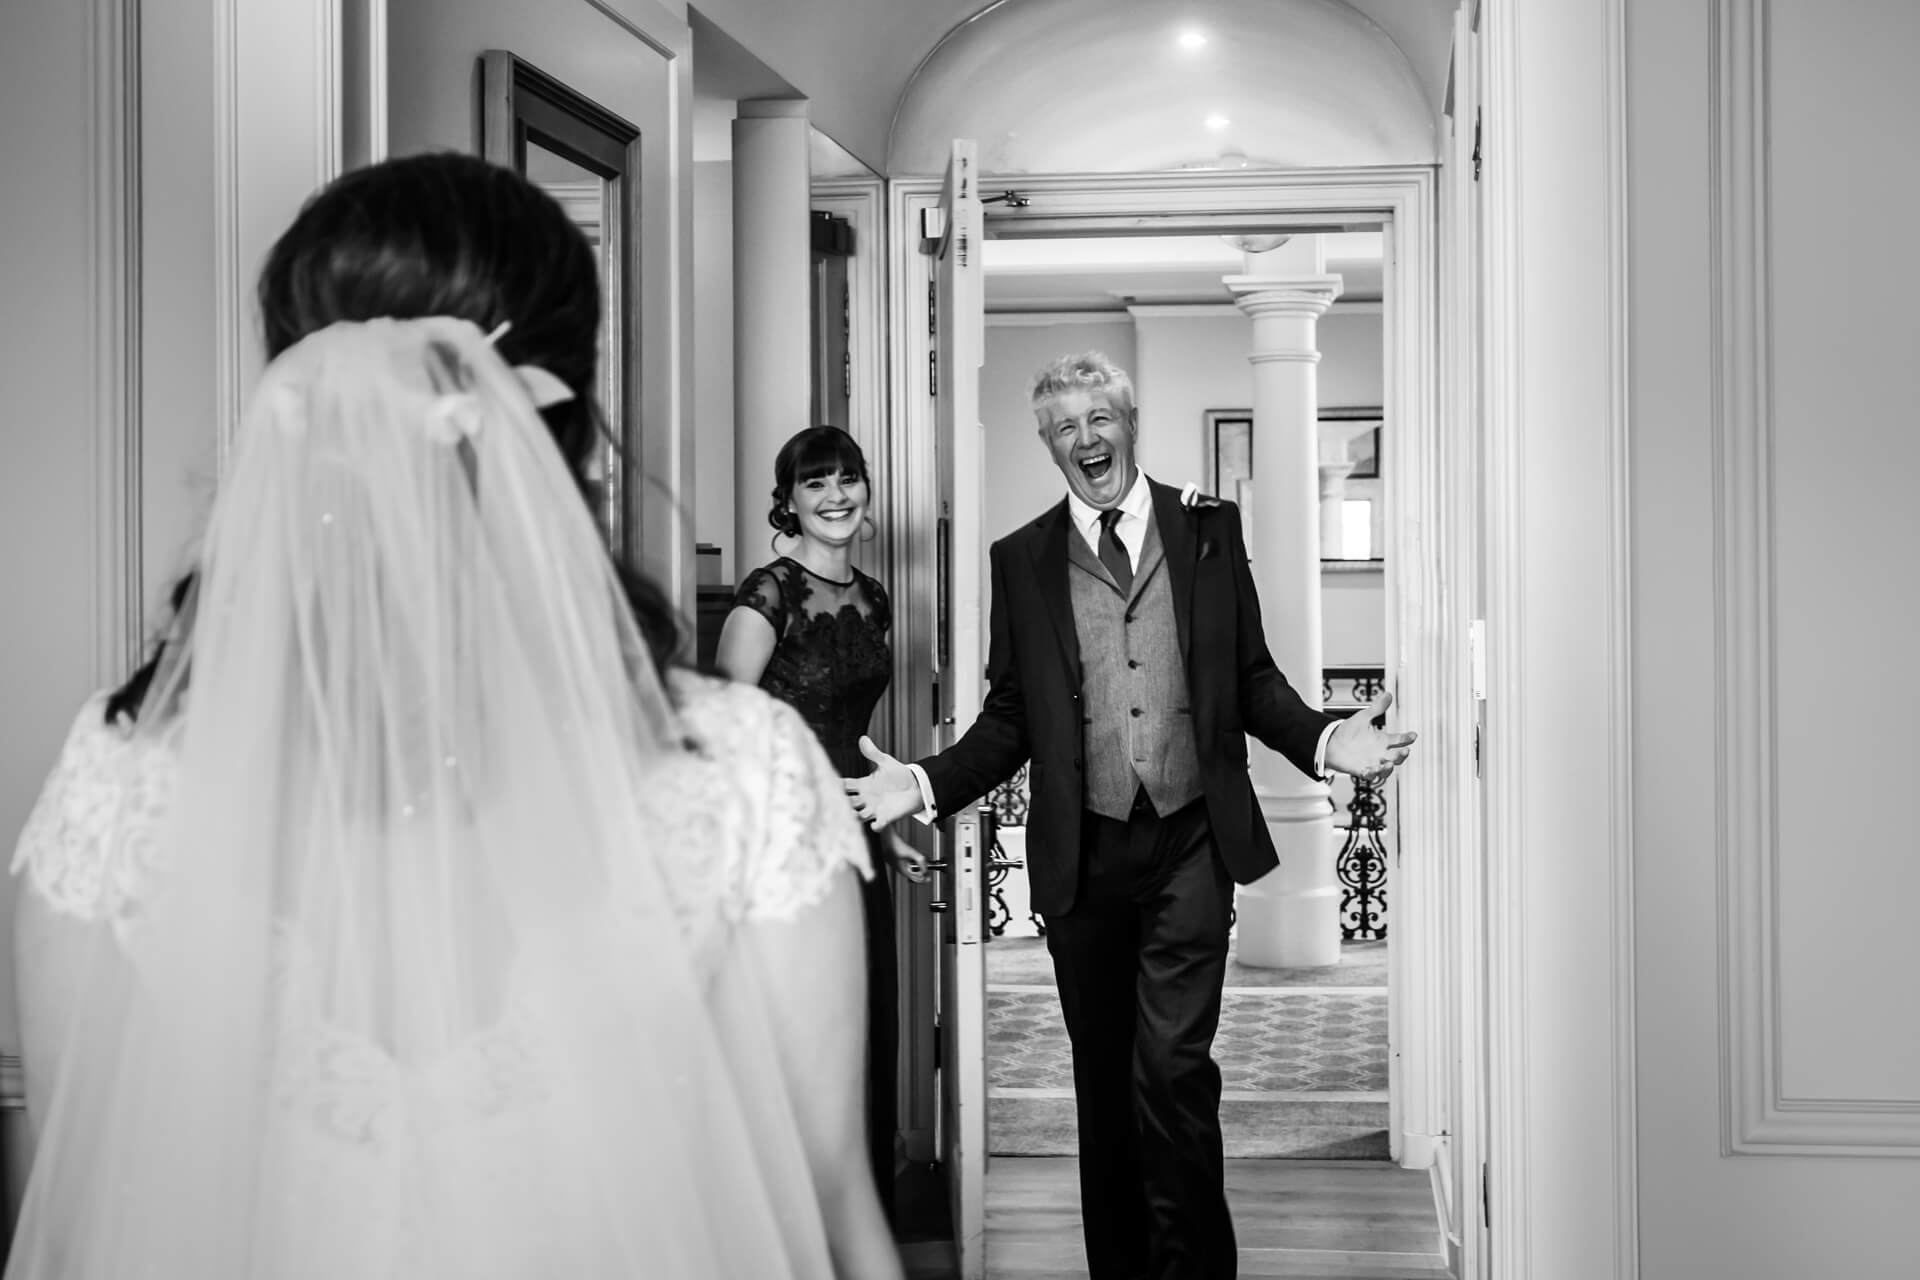 father of the bride laughing with delight as he sees the bride for the first time